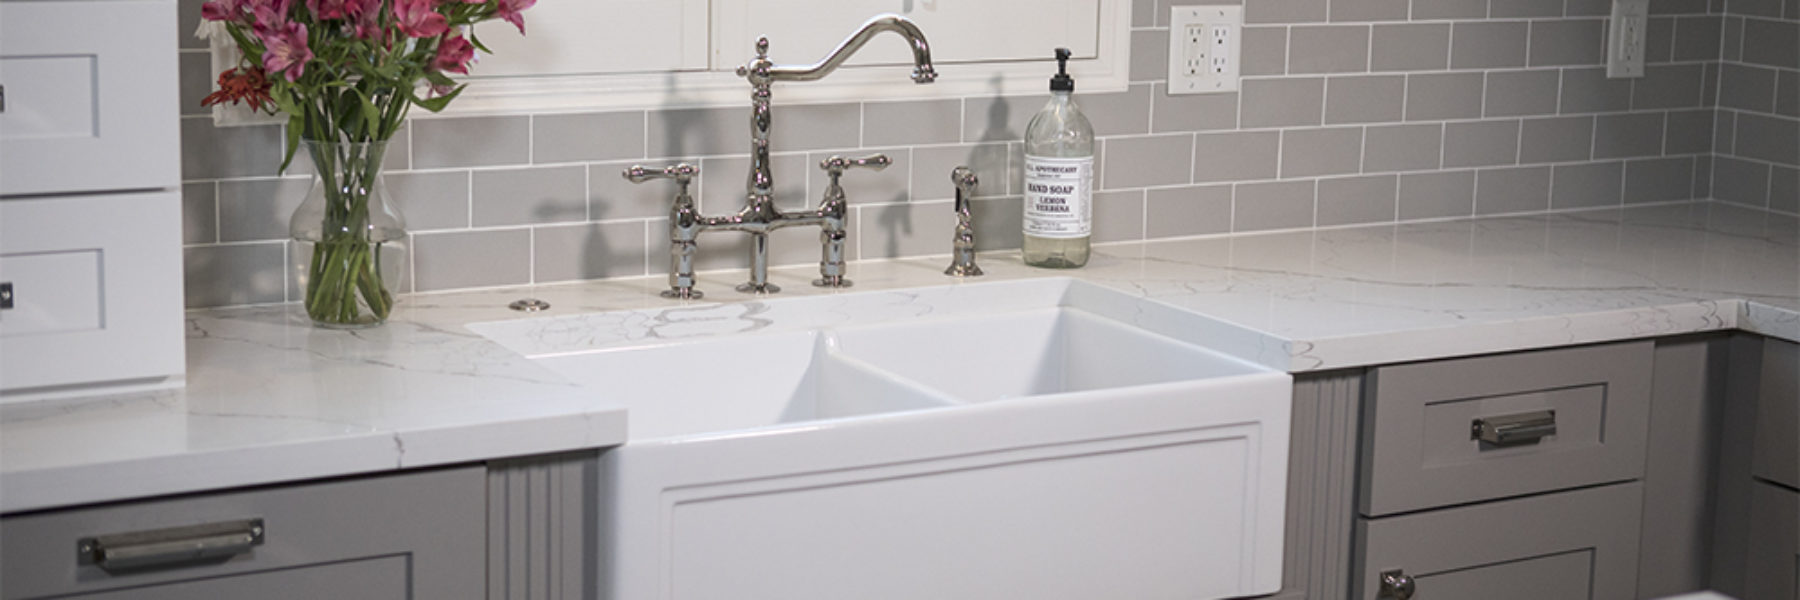 brooks-fireclay-farmhouse-sink